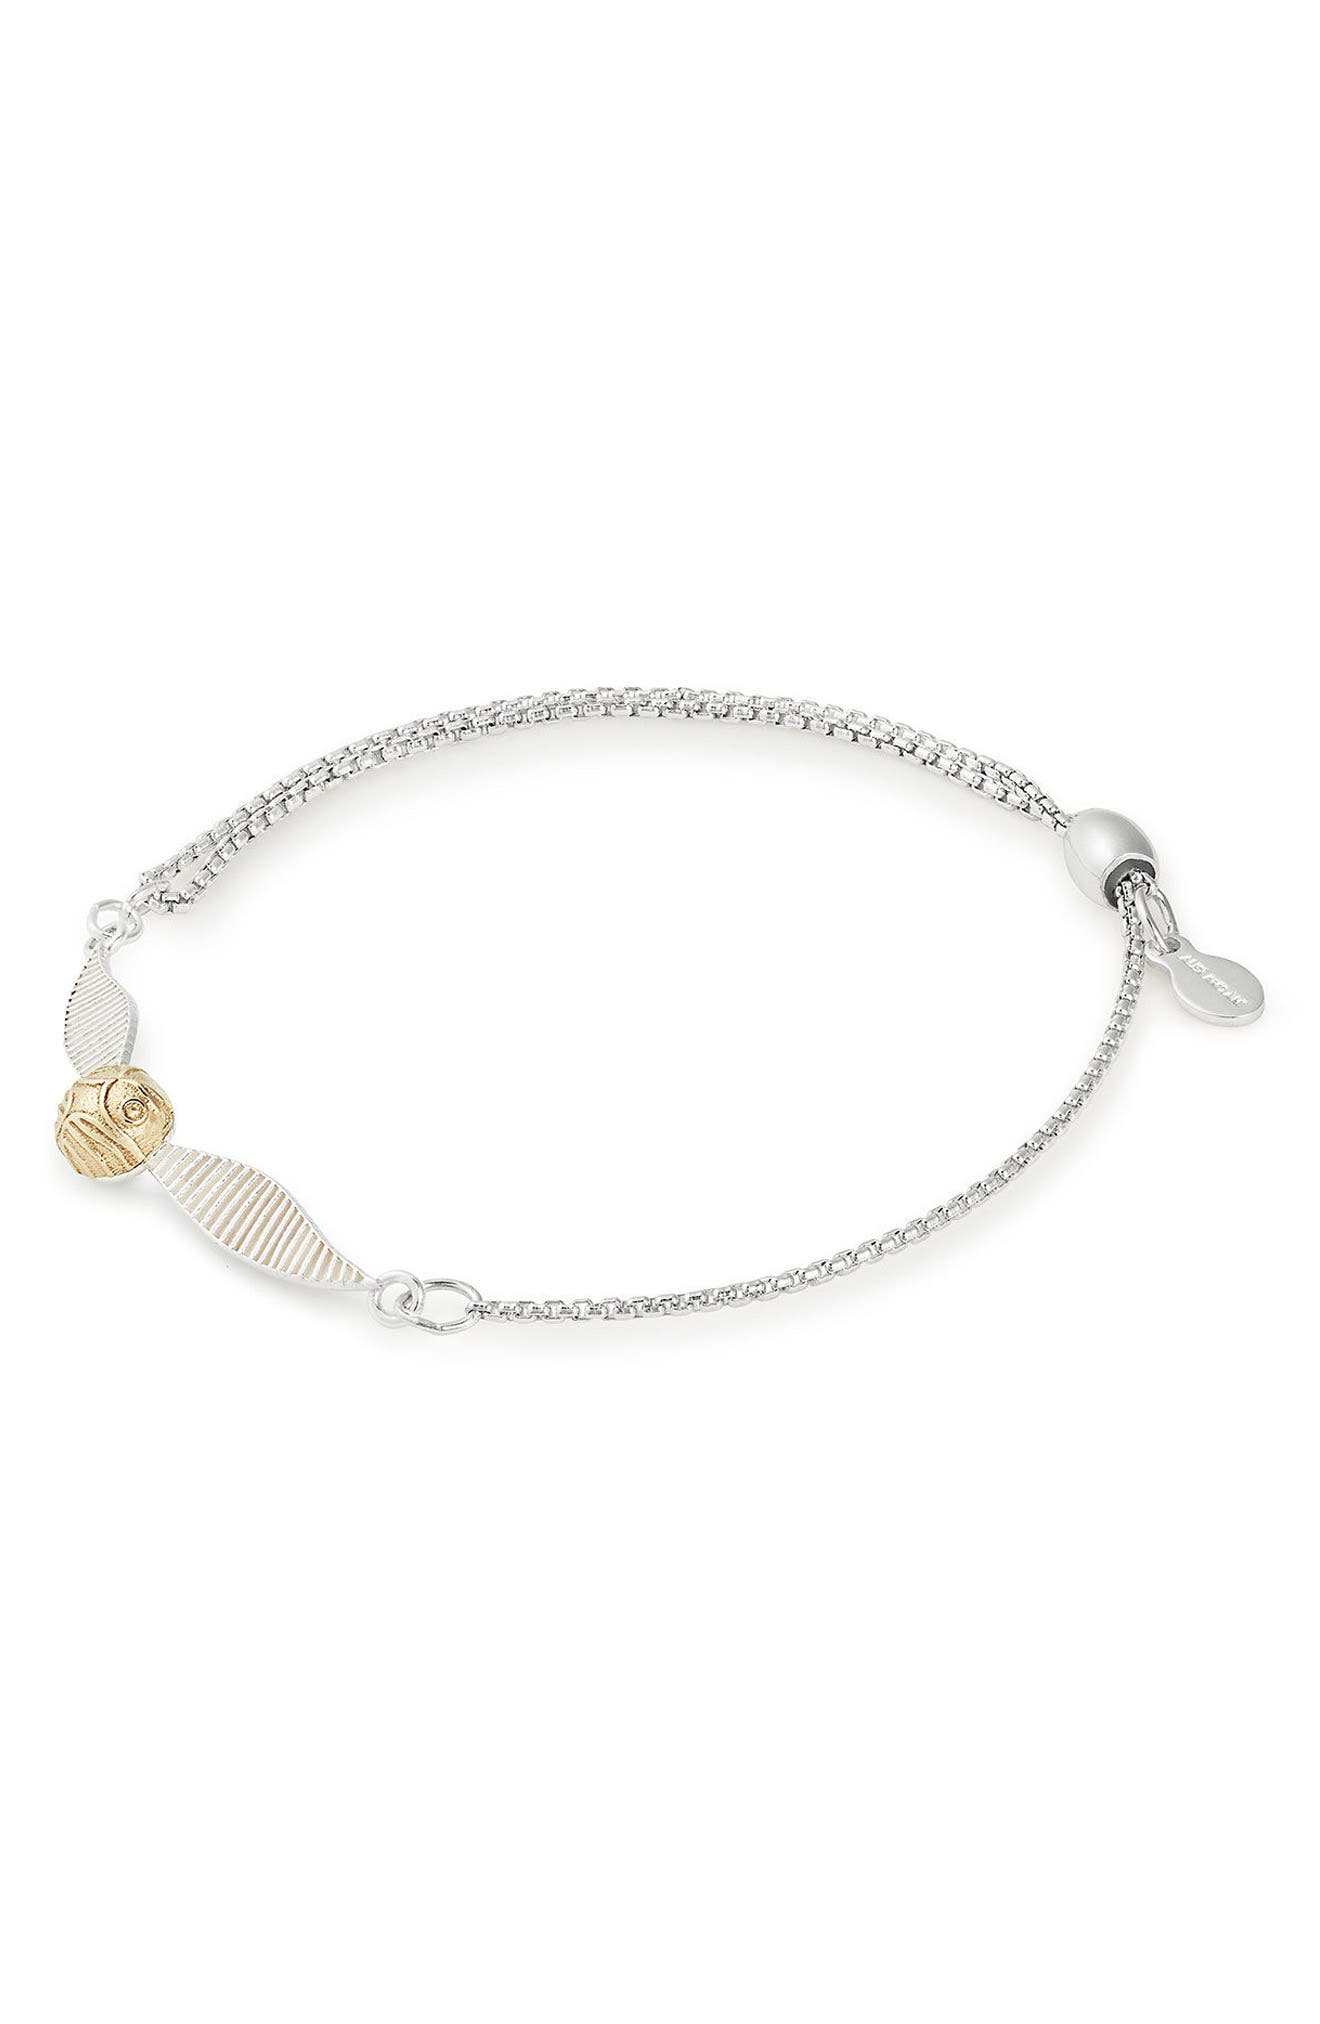 Harry Potter<sup>™</sup> Golden Snitch<sup>™</sup> Pull Chain Bracelet,                         Main,                         color, Two-Toned